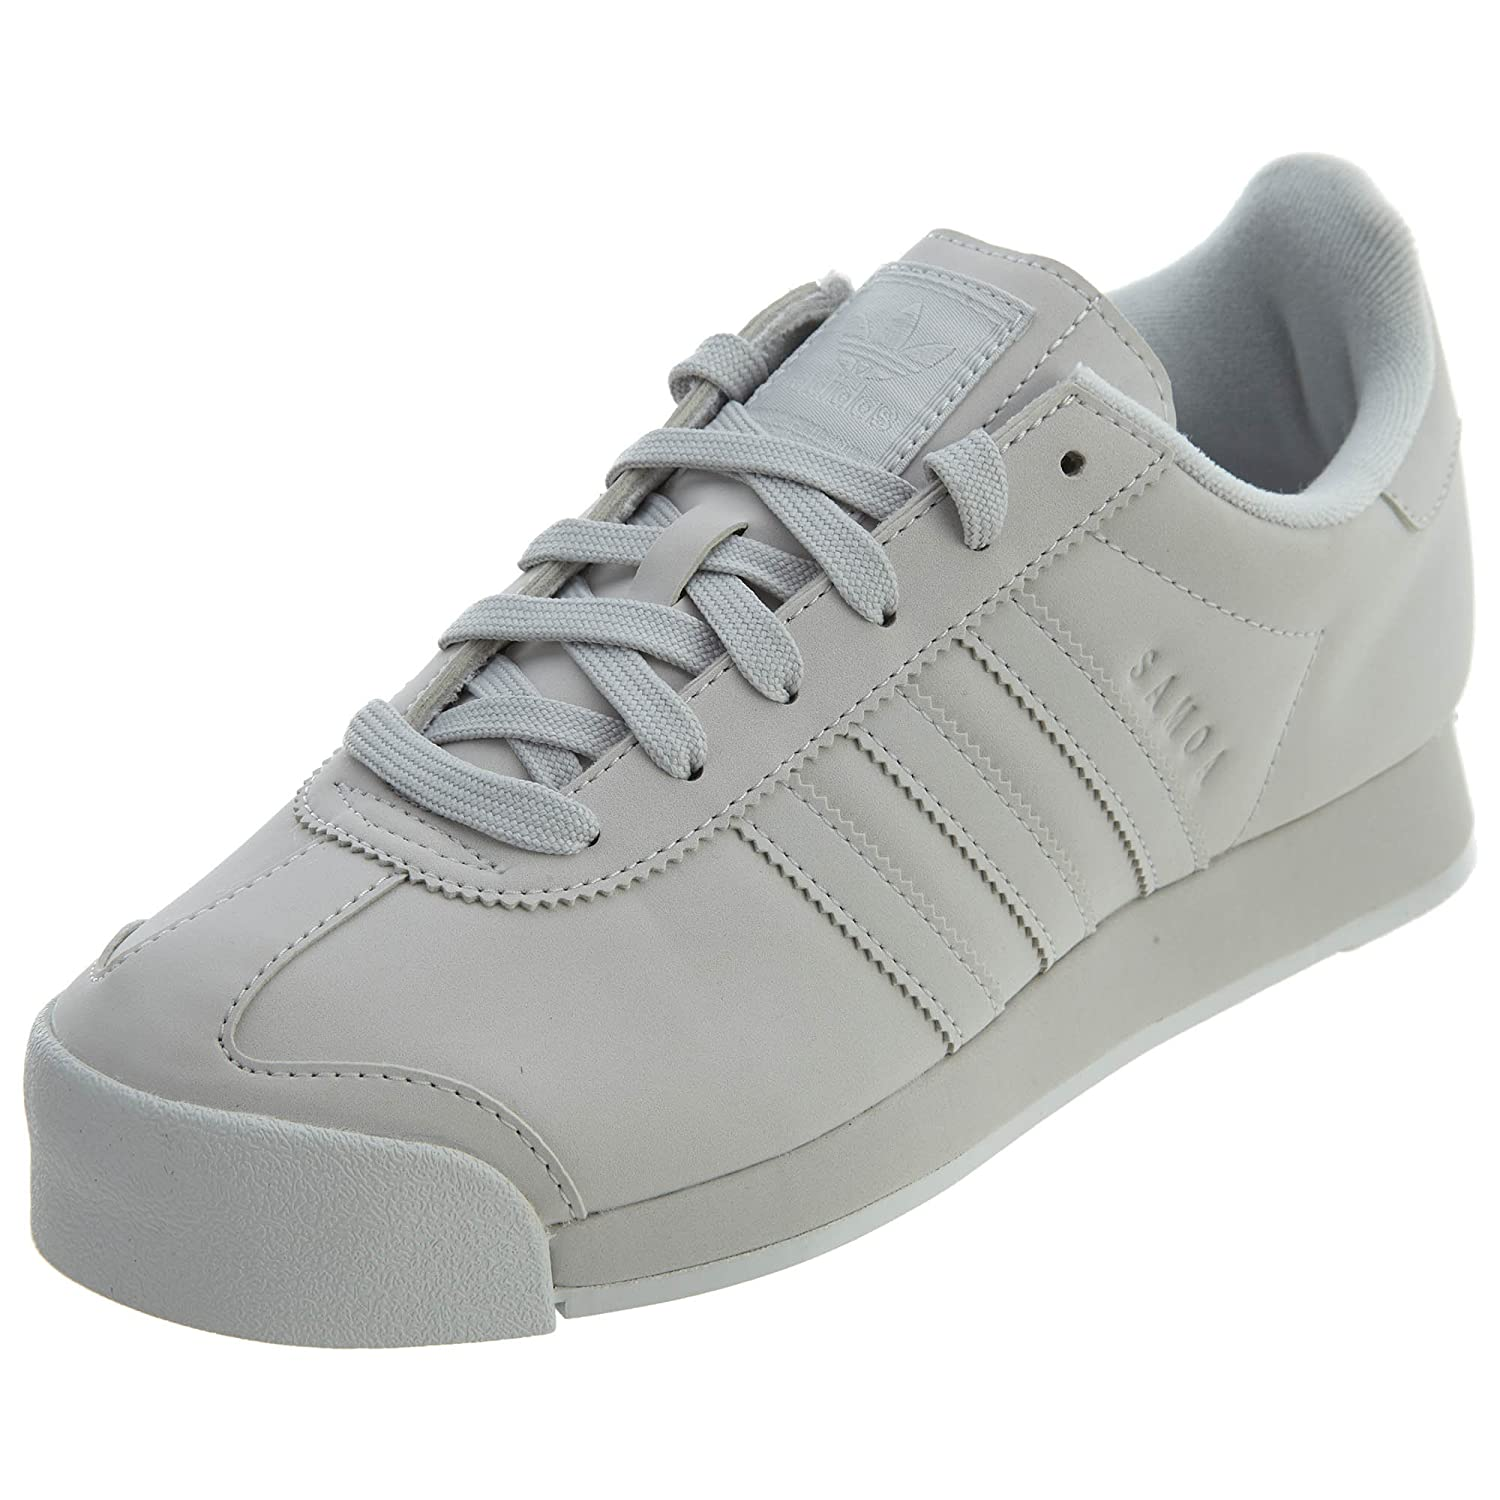 adidas Originals Women's Samoa + W B01N4E1ITP 7.5 B(M) US|Grey One/Grey One/White